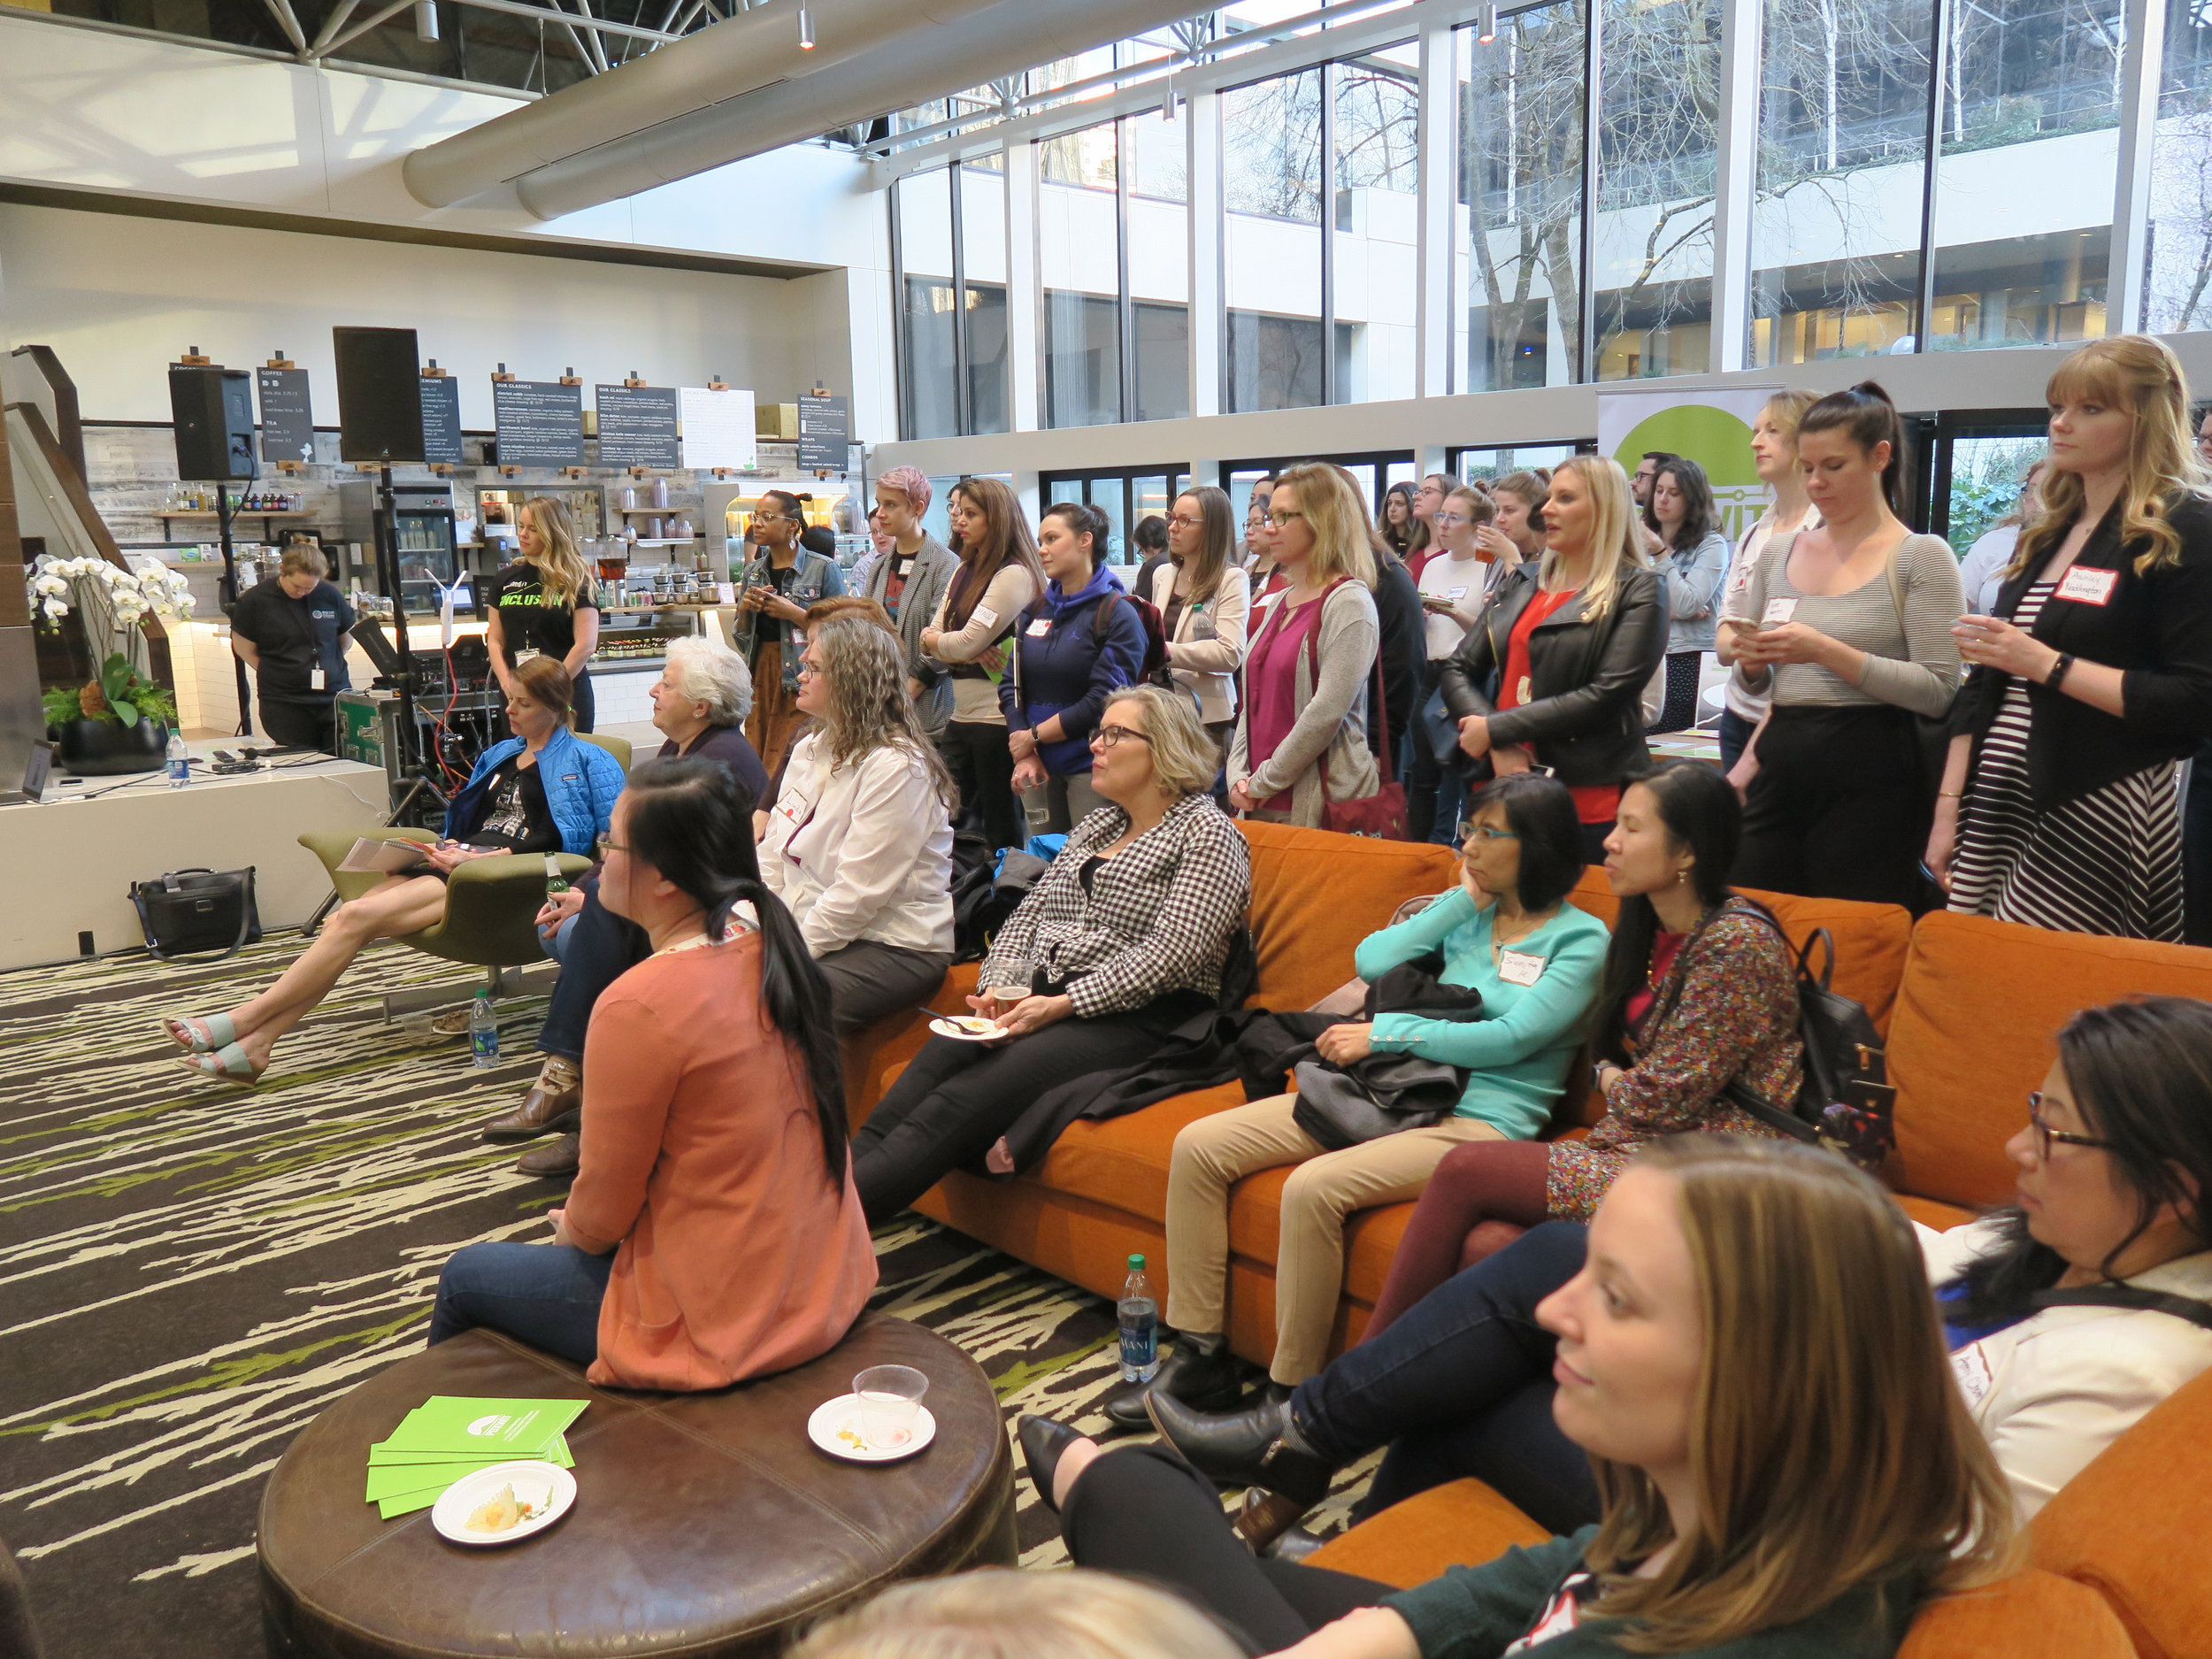 PDXWIT March Happy Hour @ Cambia Health, 3/19/19, Attendees listen to the presentation